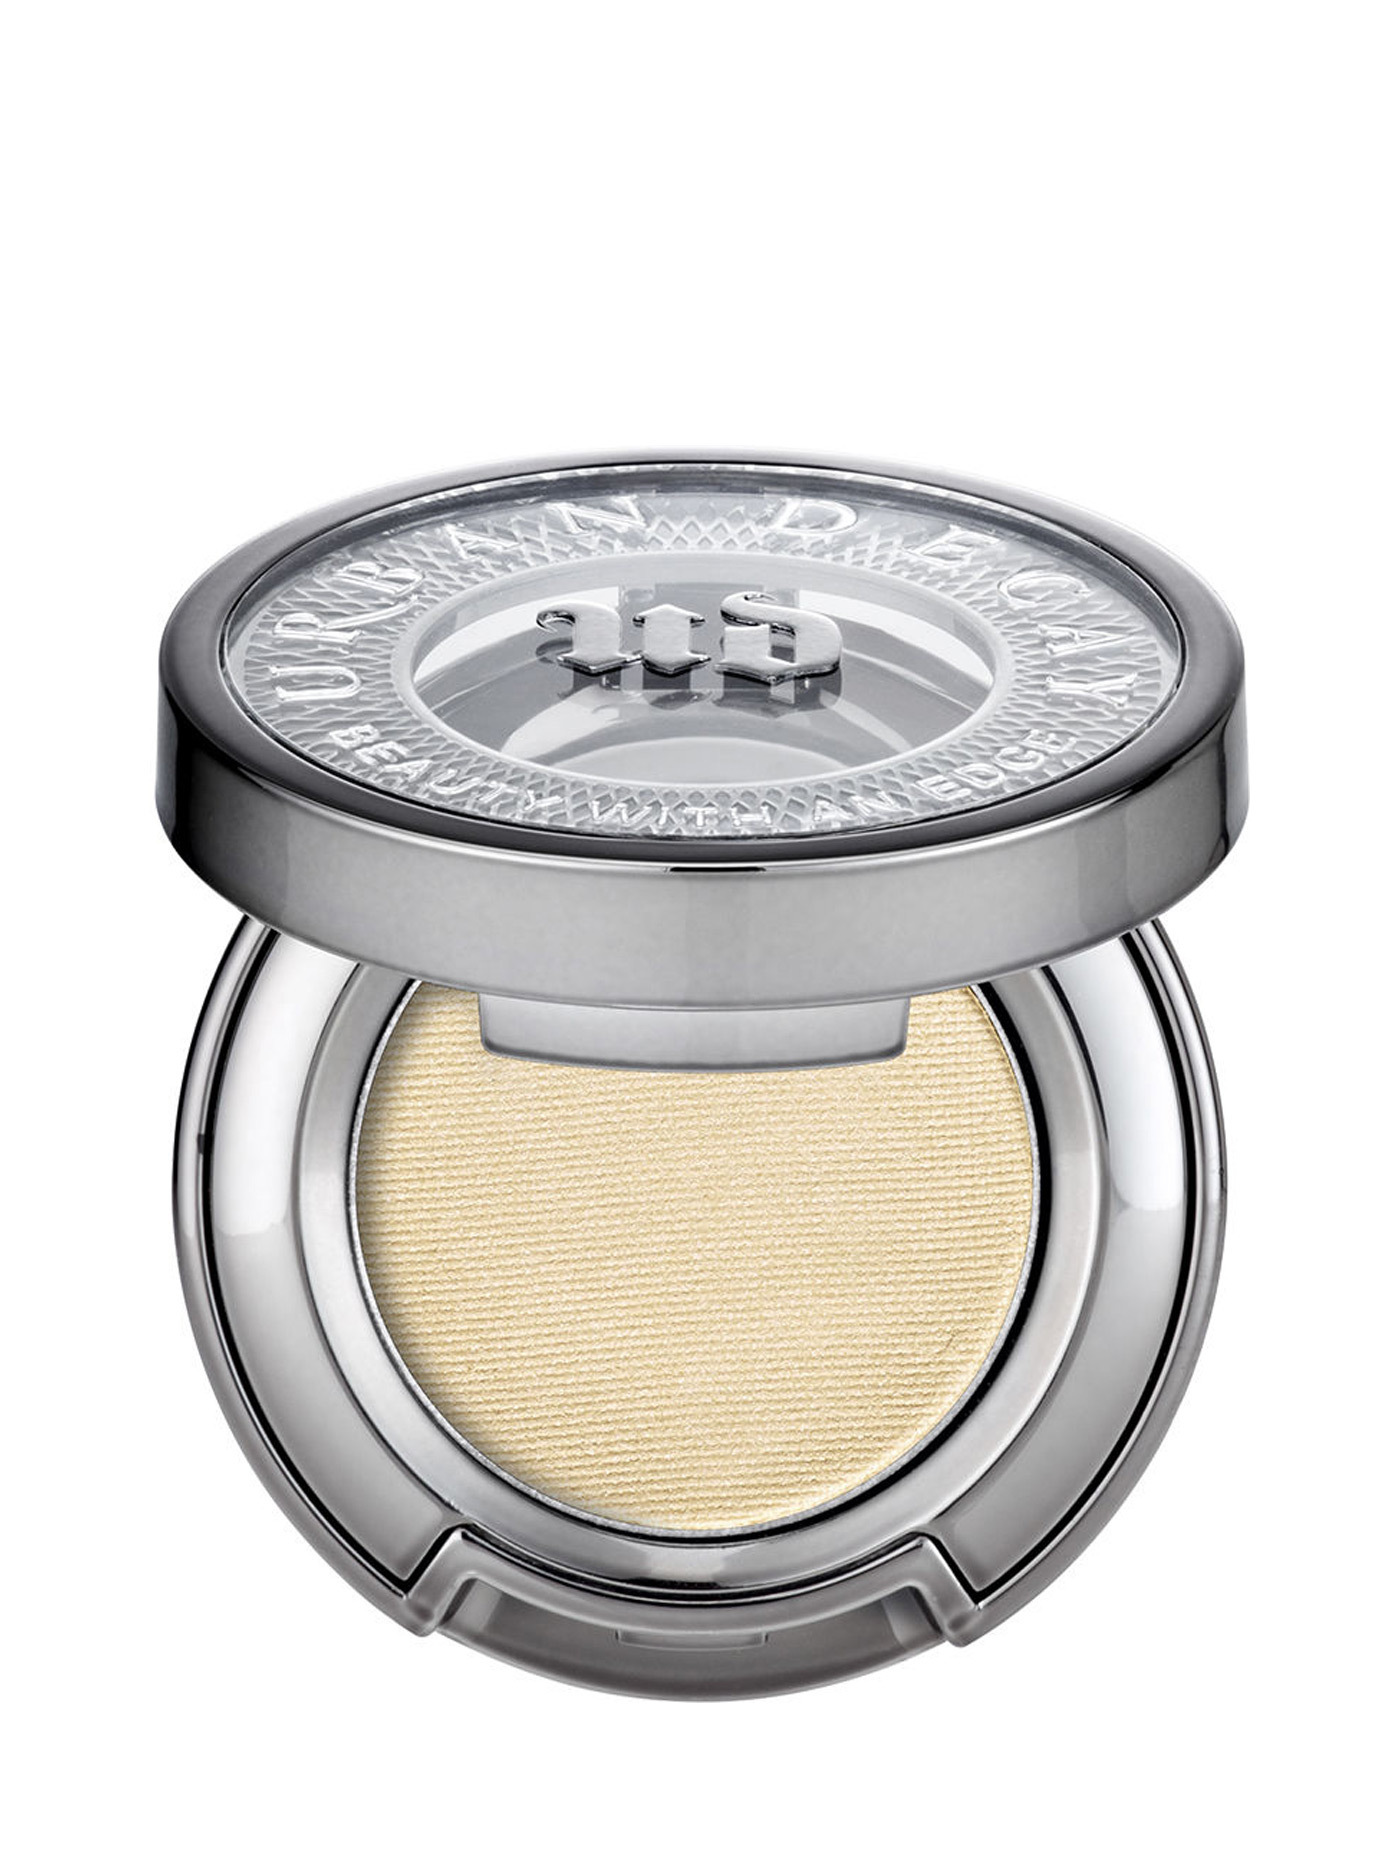 URBAN DECAY Eye Shadow #Blonde (Pale beige) 送料無料 追跡有